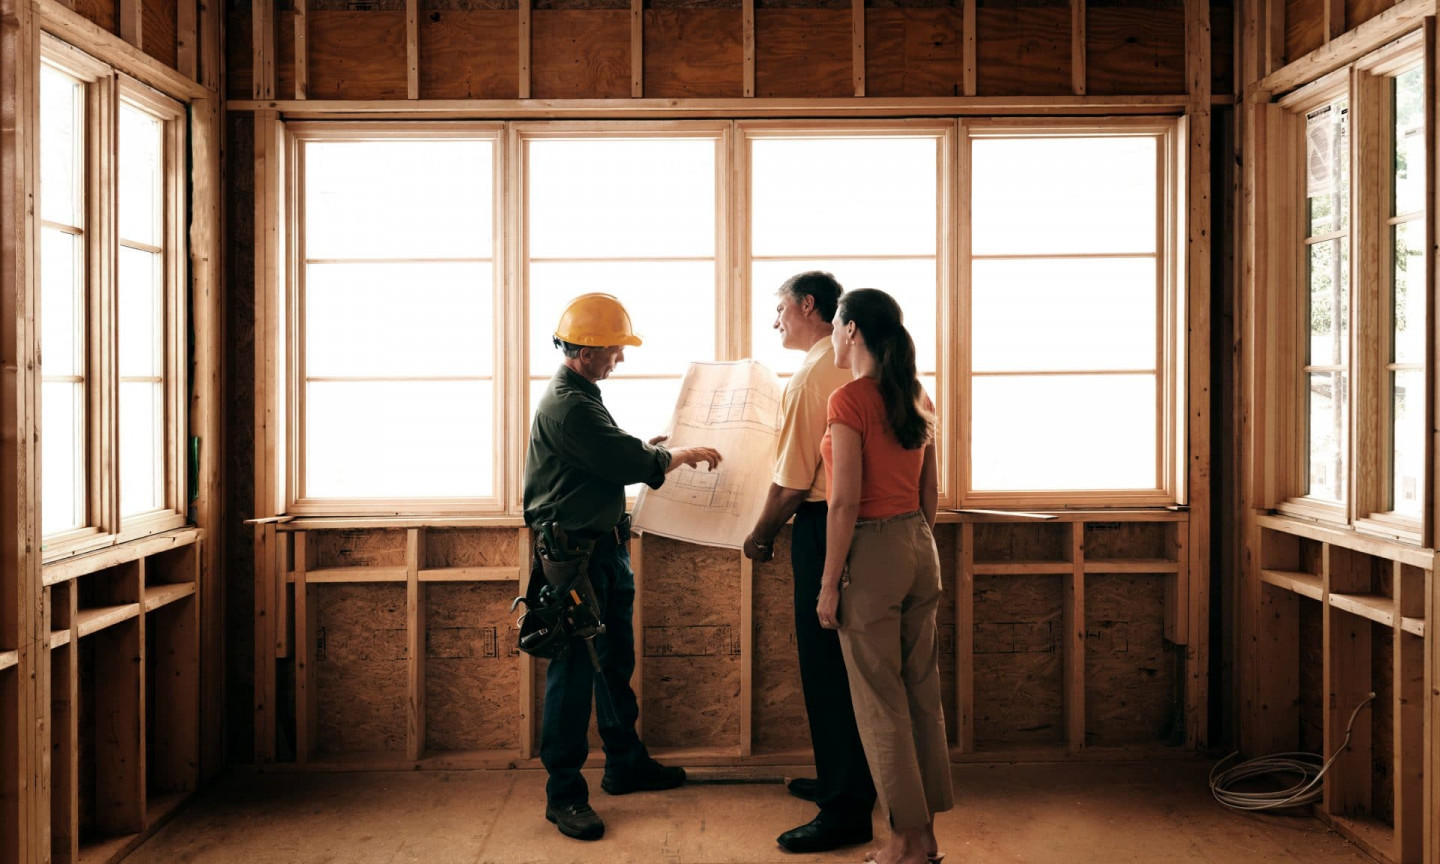 construction lender national blog image